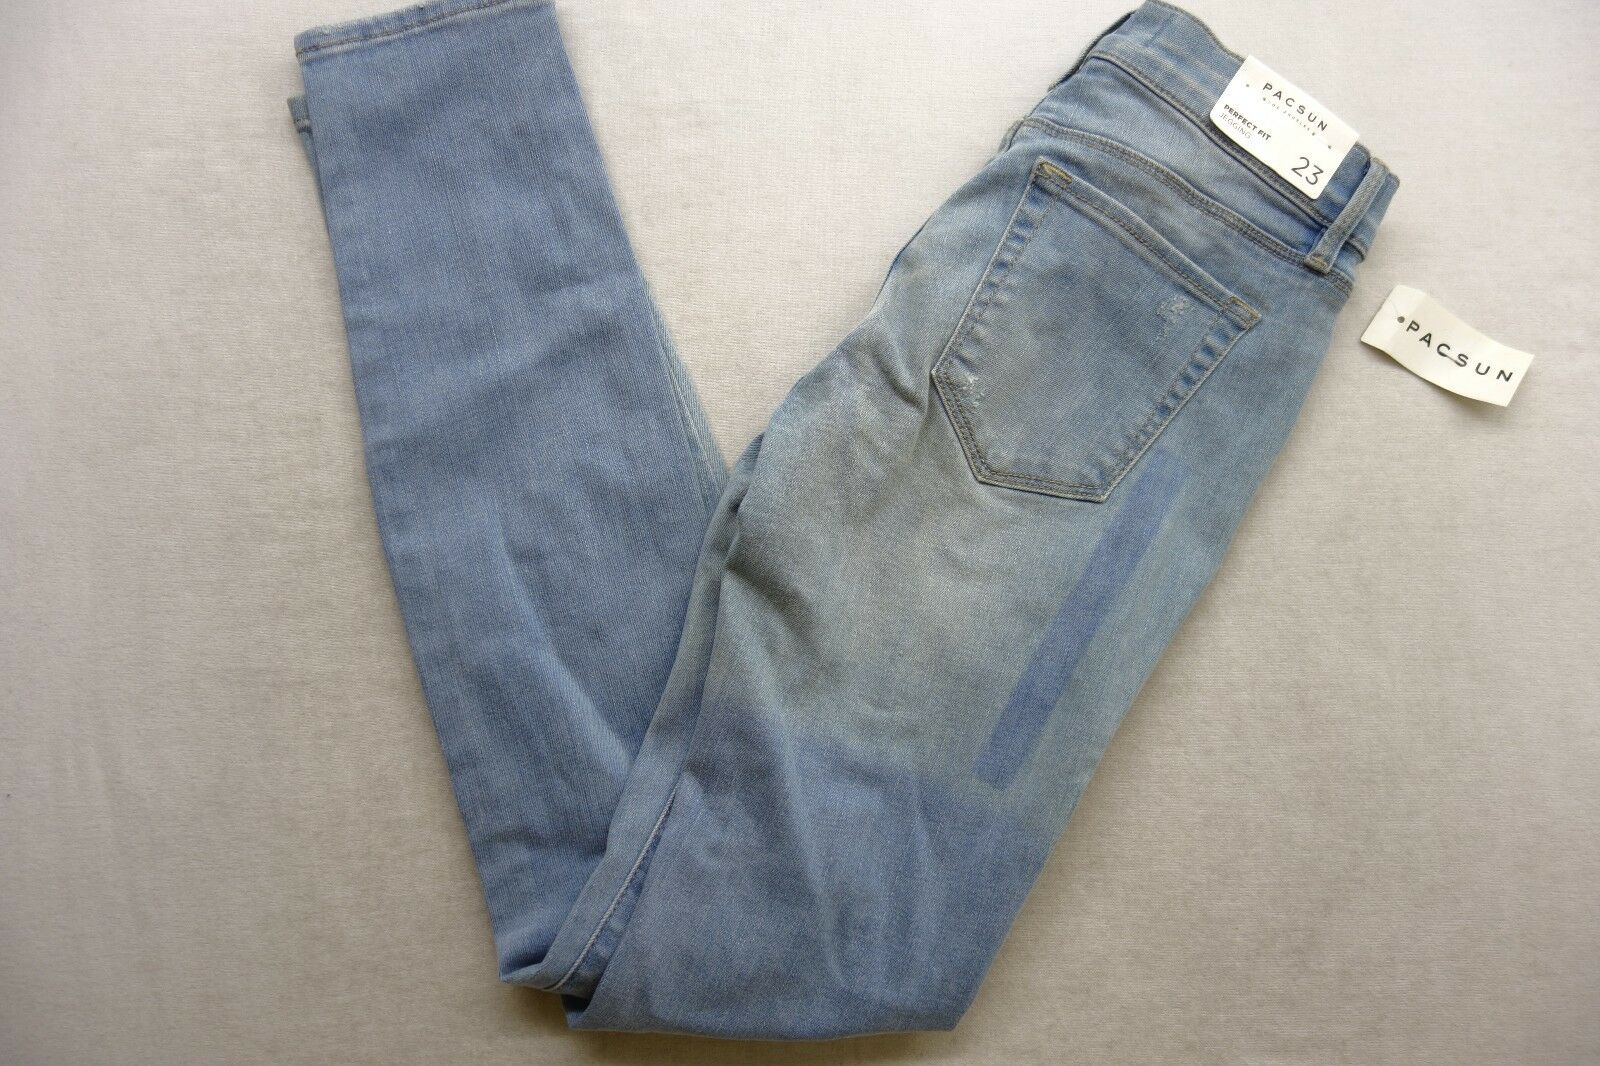 New Womens Pacsun Perfect Ankle Jegging Stretch Distressed Denim Jeans 23 x 29